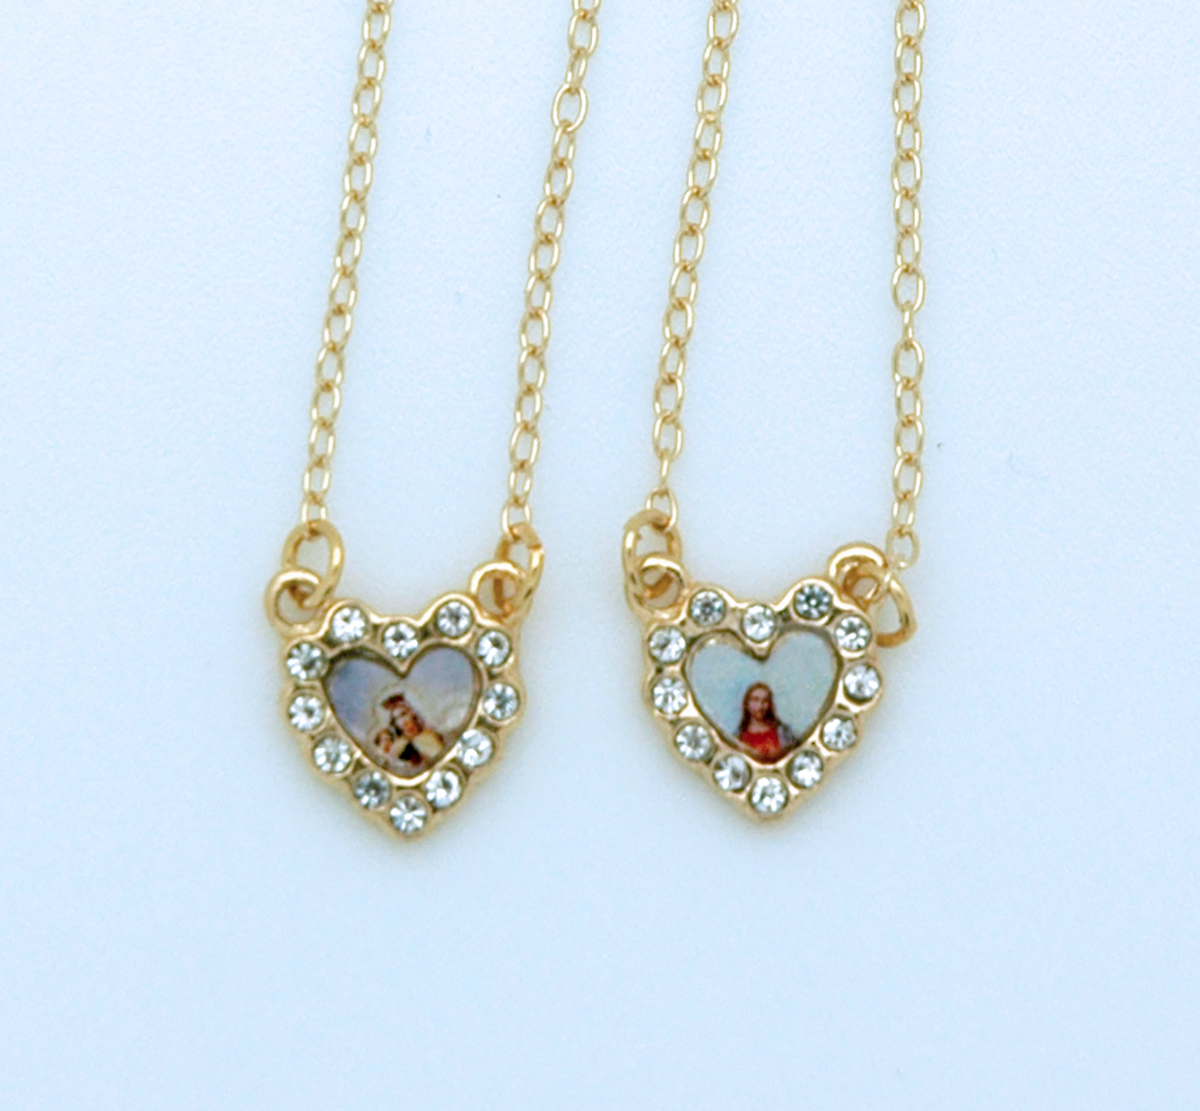 Bf89 Brazilian Gold Plated Scar Hearts With Color Pictures Crystals